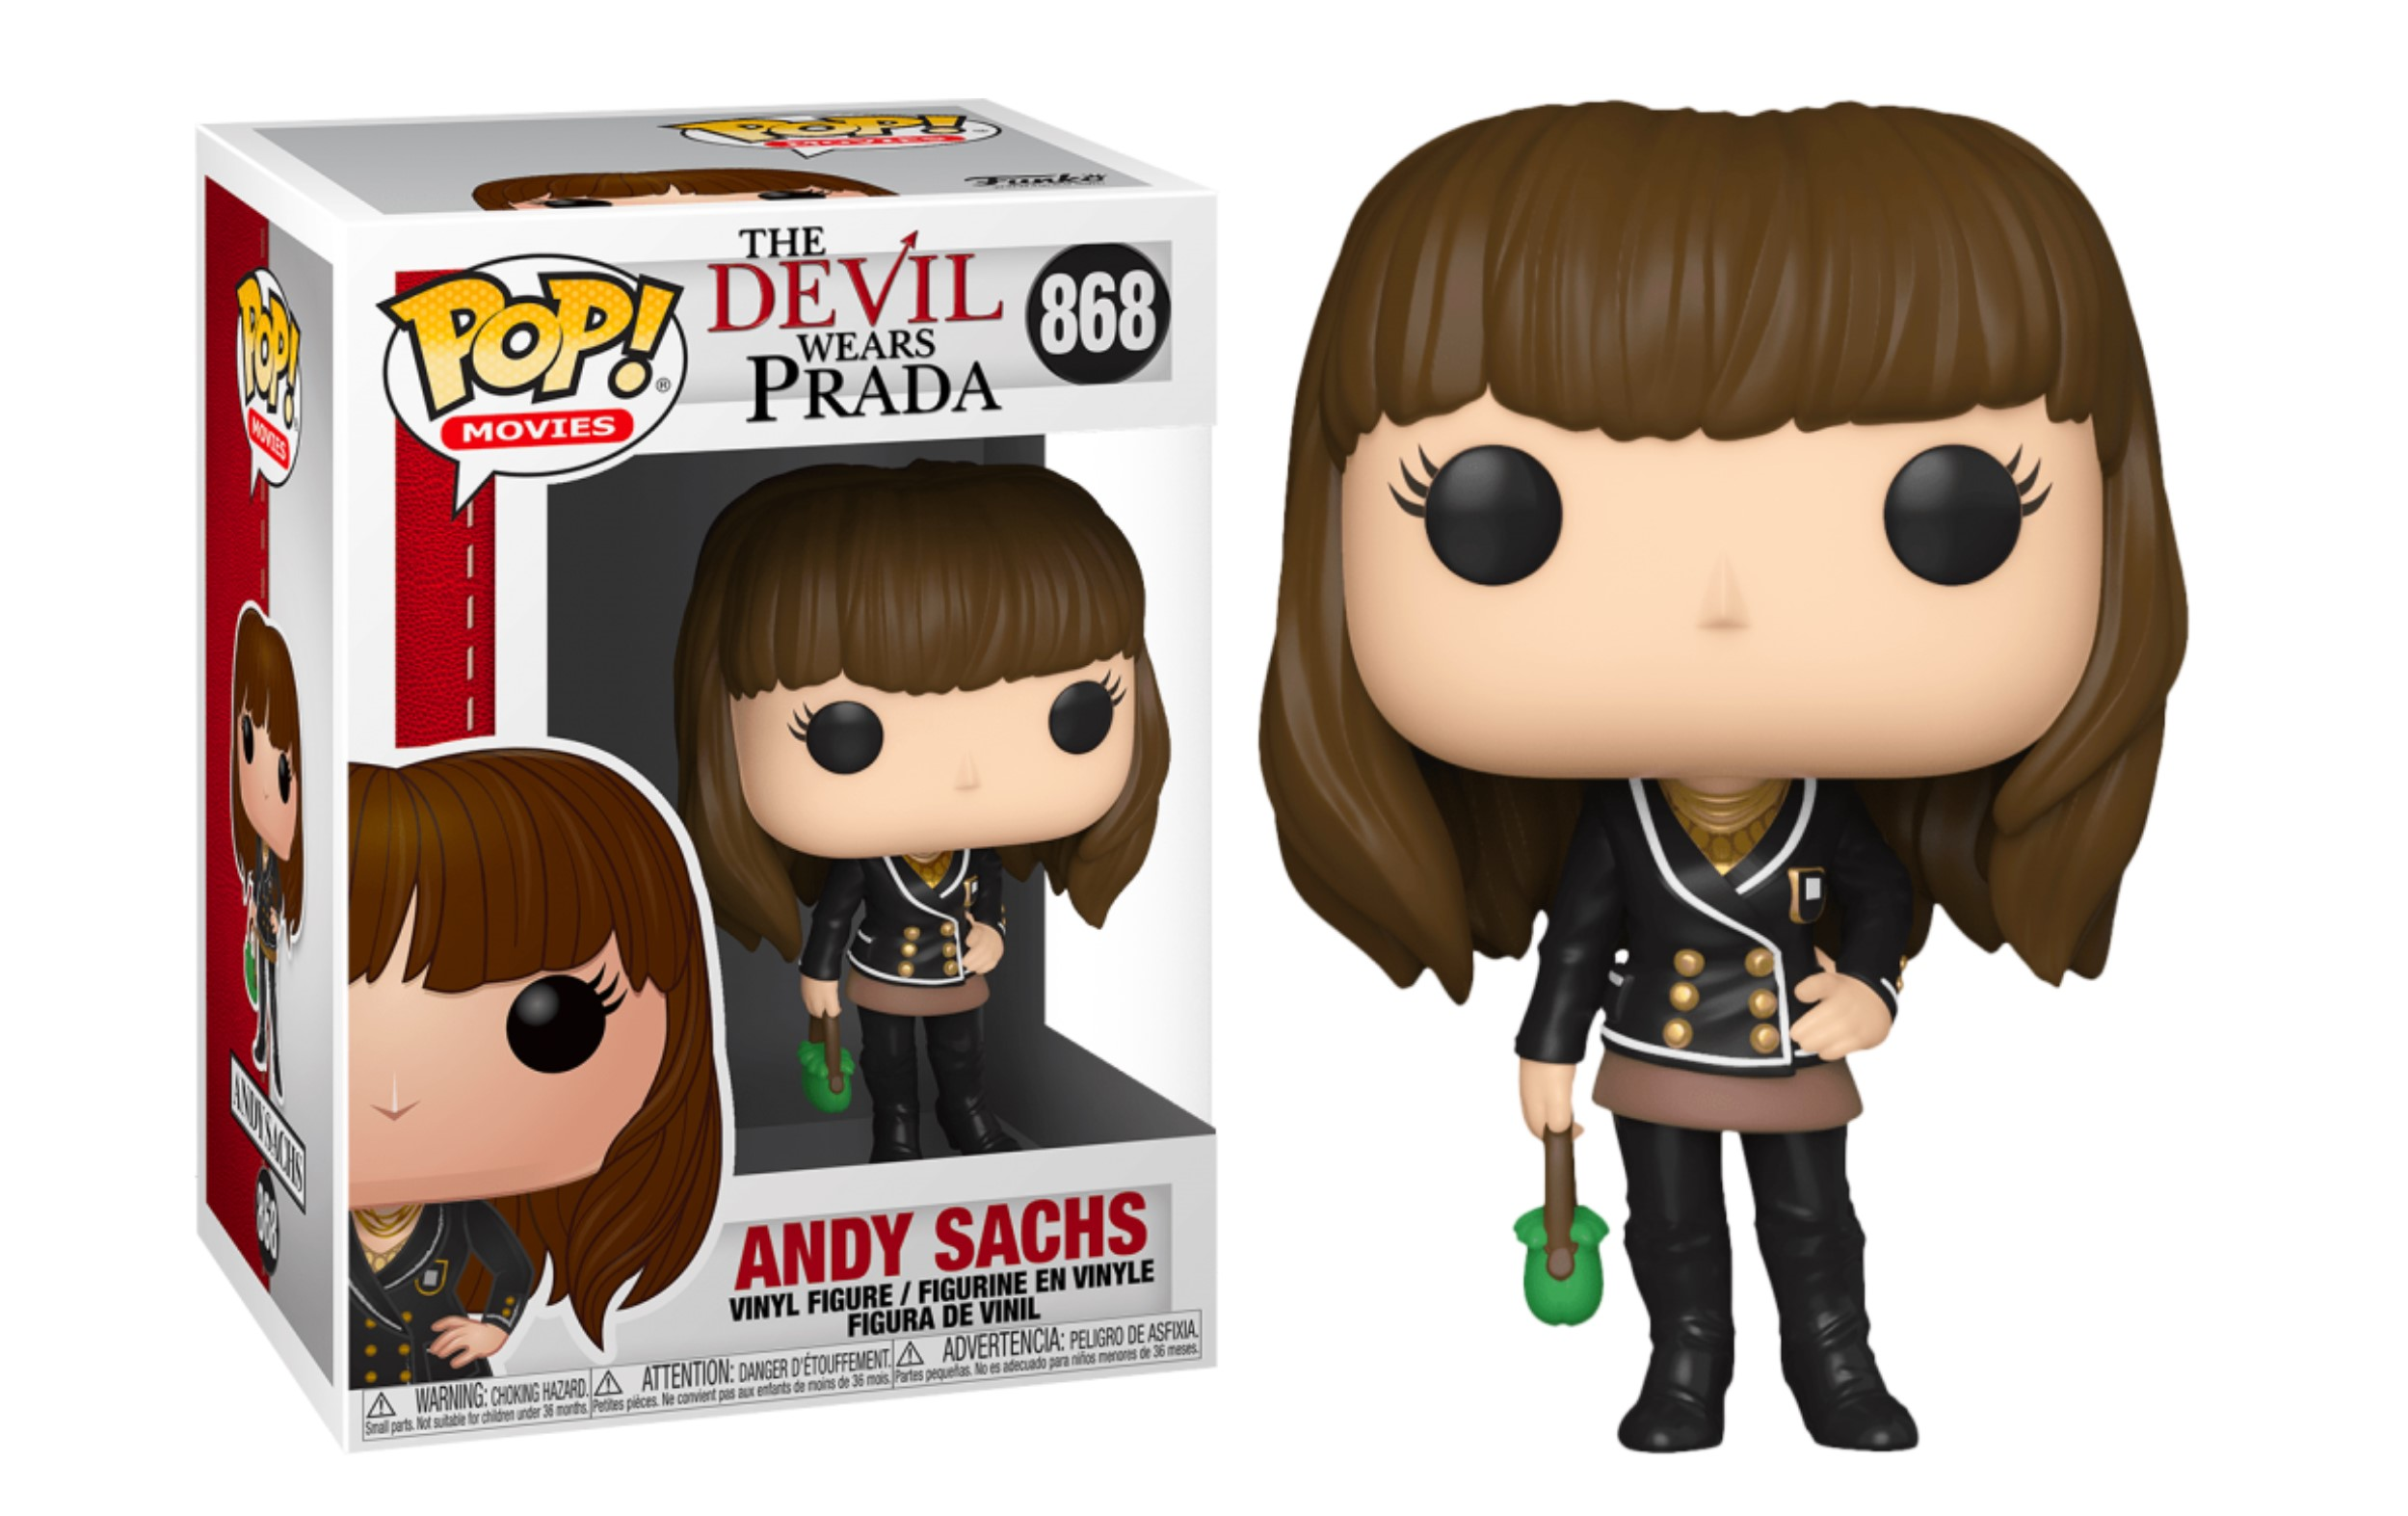 The Devil Wears Prada Andy Sachs 868 Funko POP Vinyl Figure